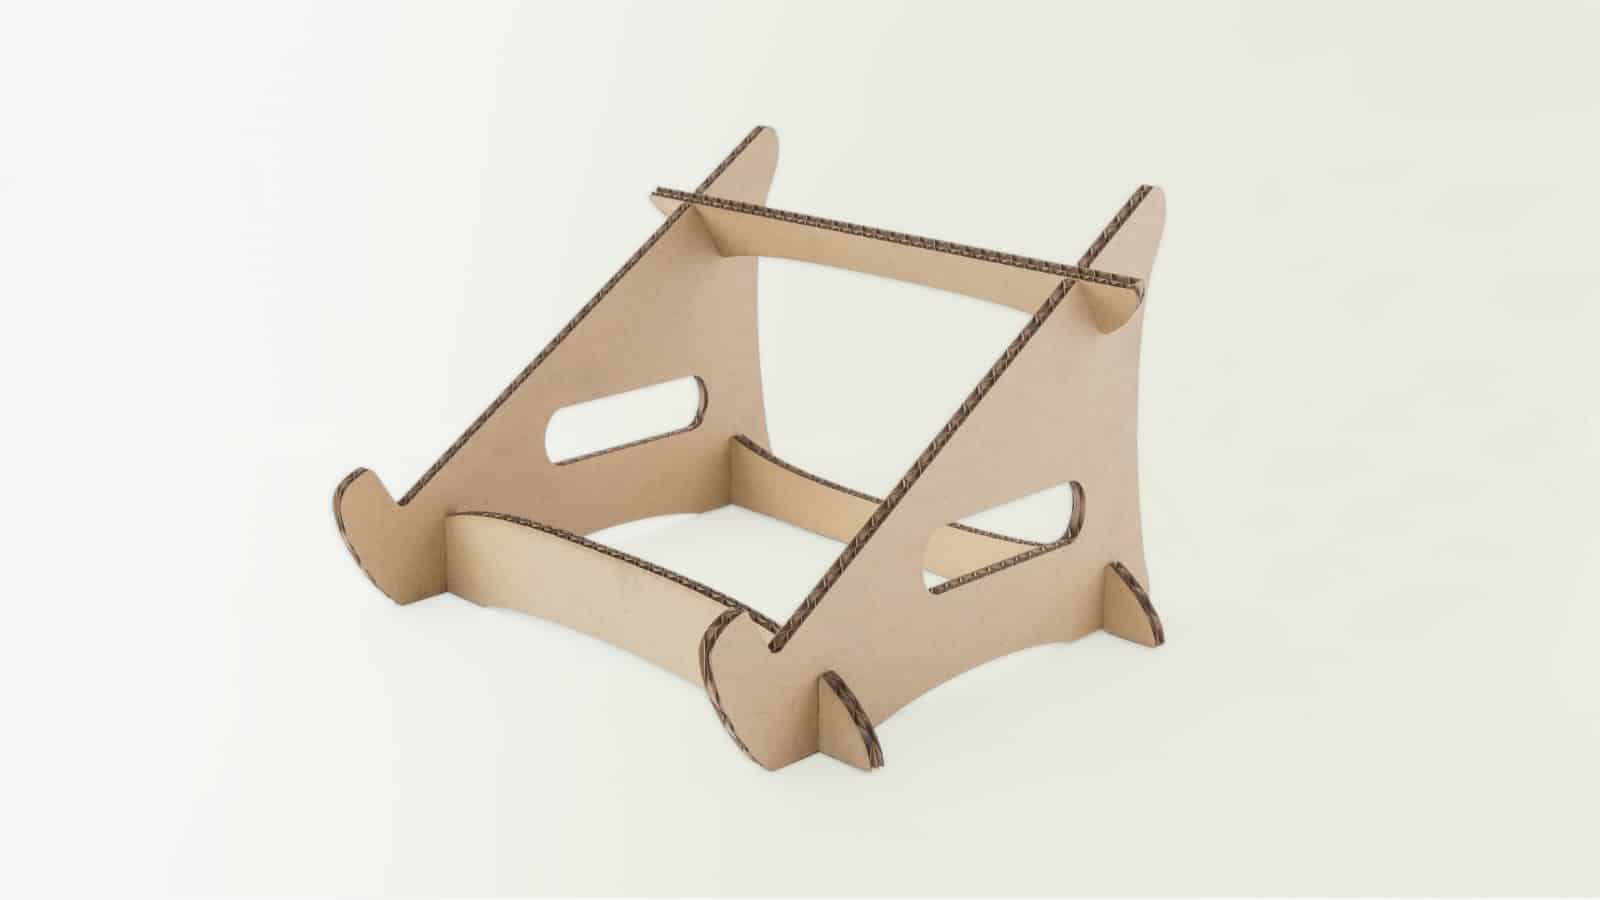 LUP_LAPTOP_STAND_PRODUCT_1